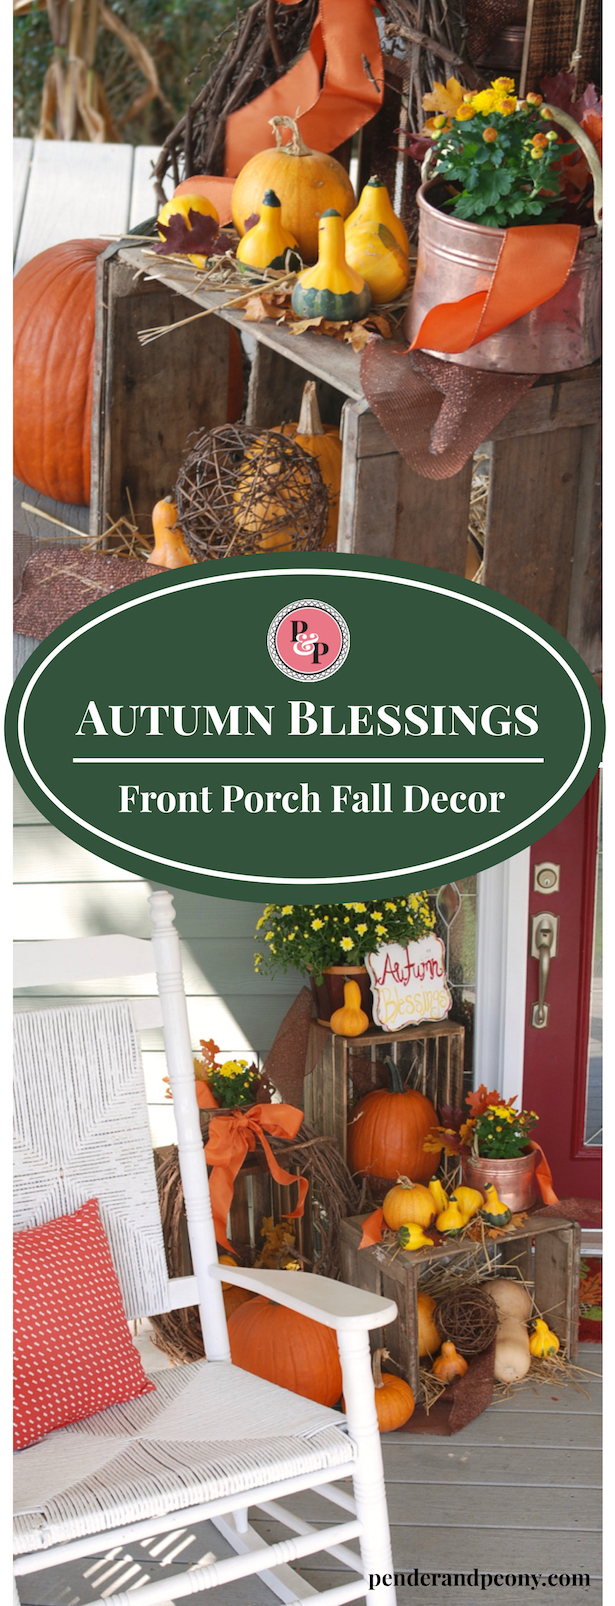 Farmhouse Fall Porch Decor with crates, pumpkins, copper, and mums. Rustic but elegant fall decor. Save pin for later.